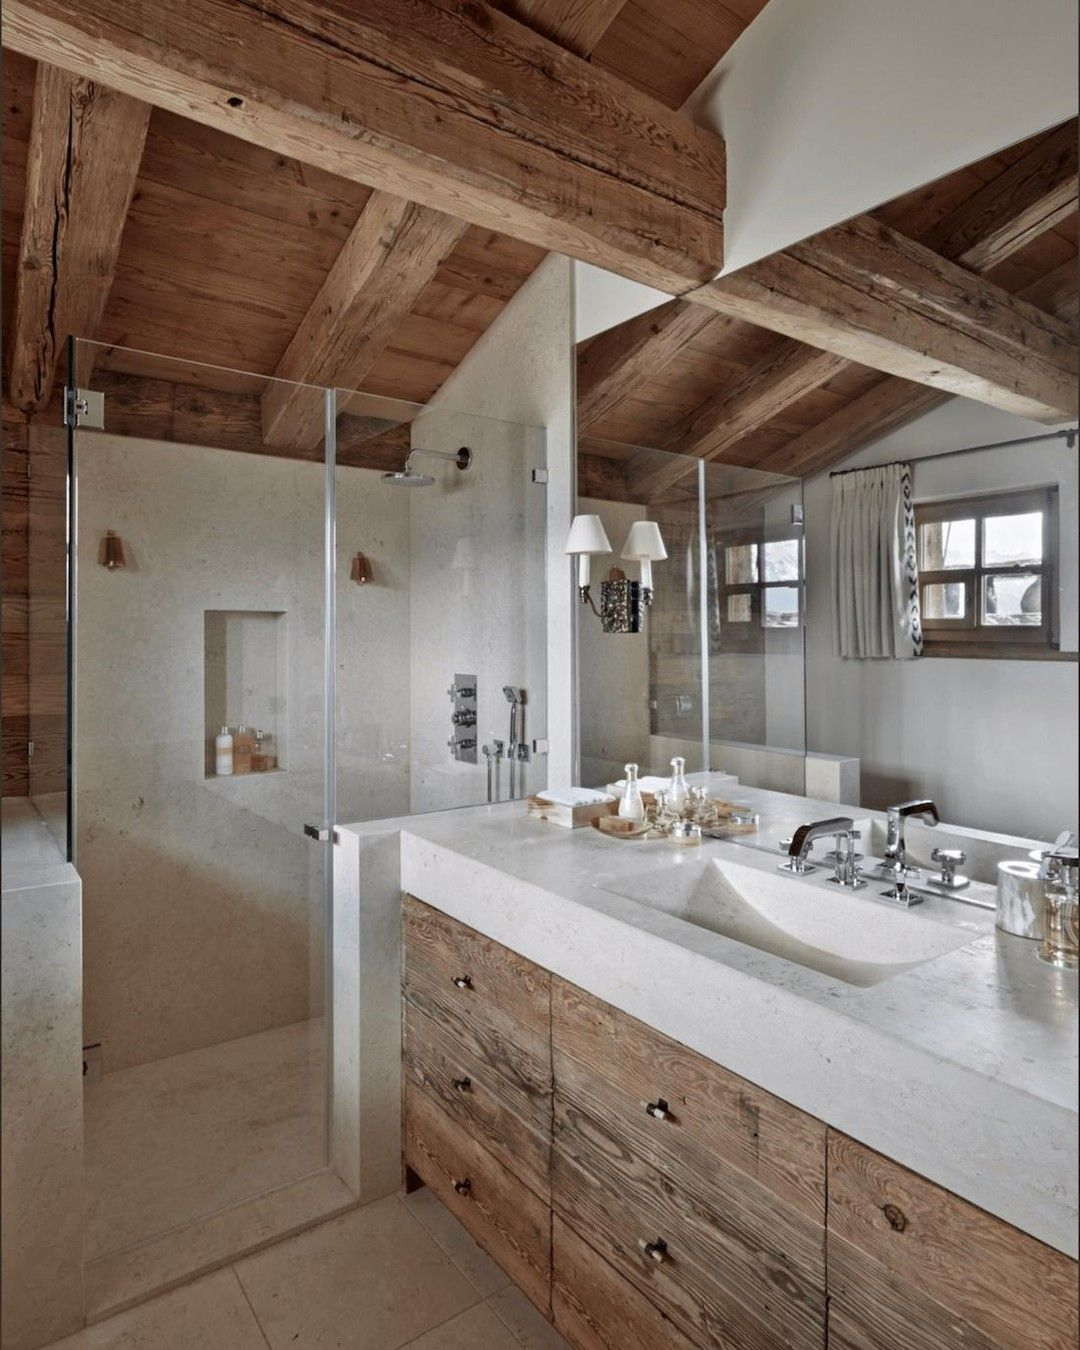 Annewhiteinteriors Posted To Instagram Anne White Interiors Blog Inspiration Of The Week Swiss Cha House Bathroom Rustic Bathrooms Bathroom Interior Design